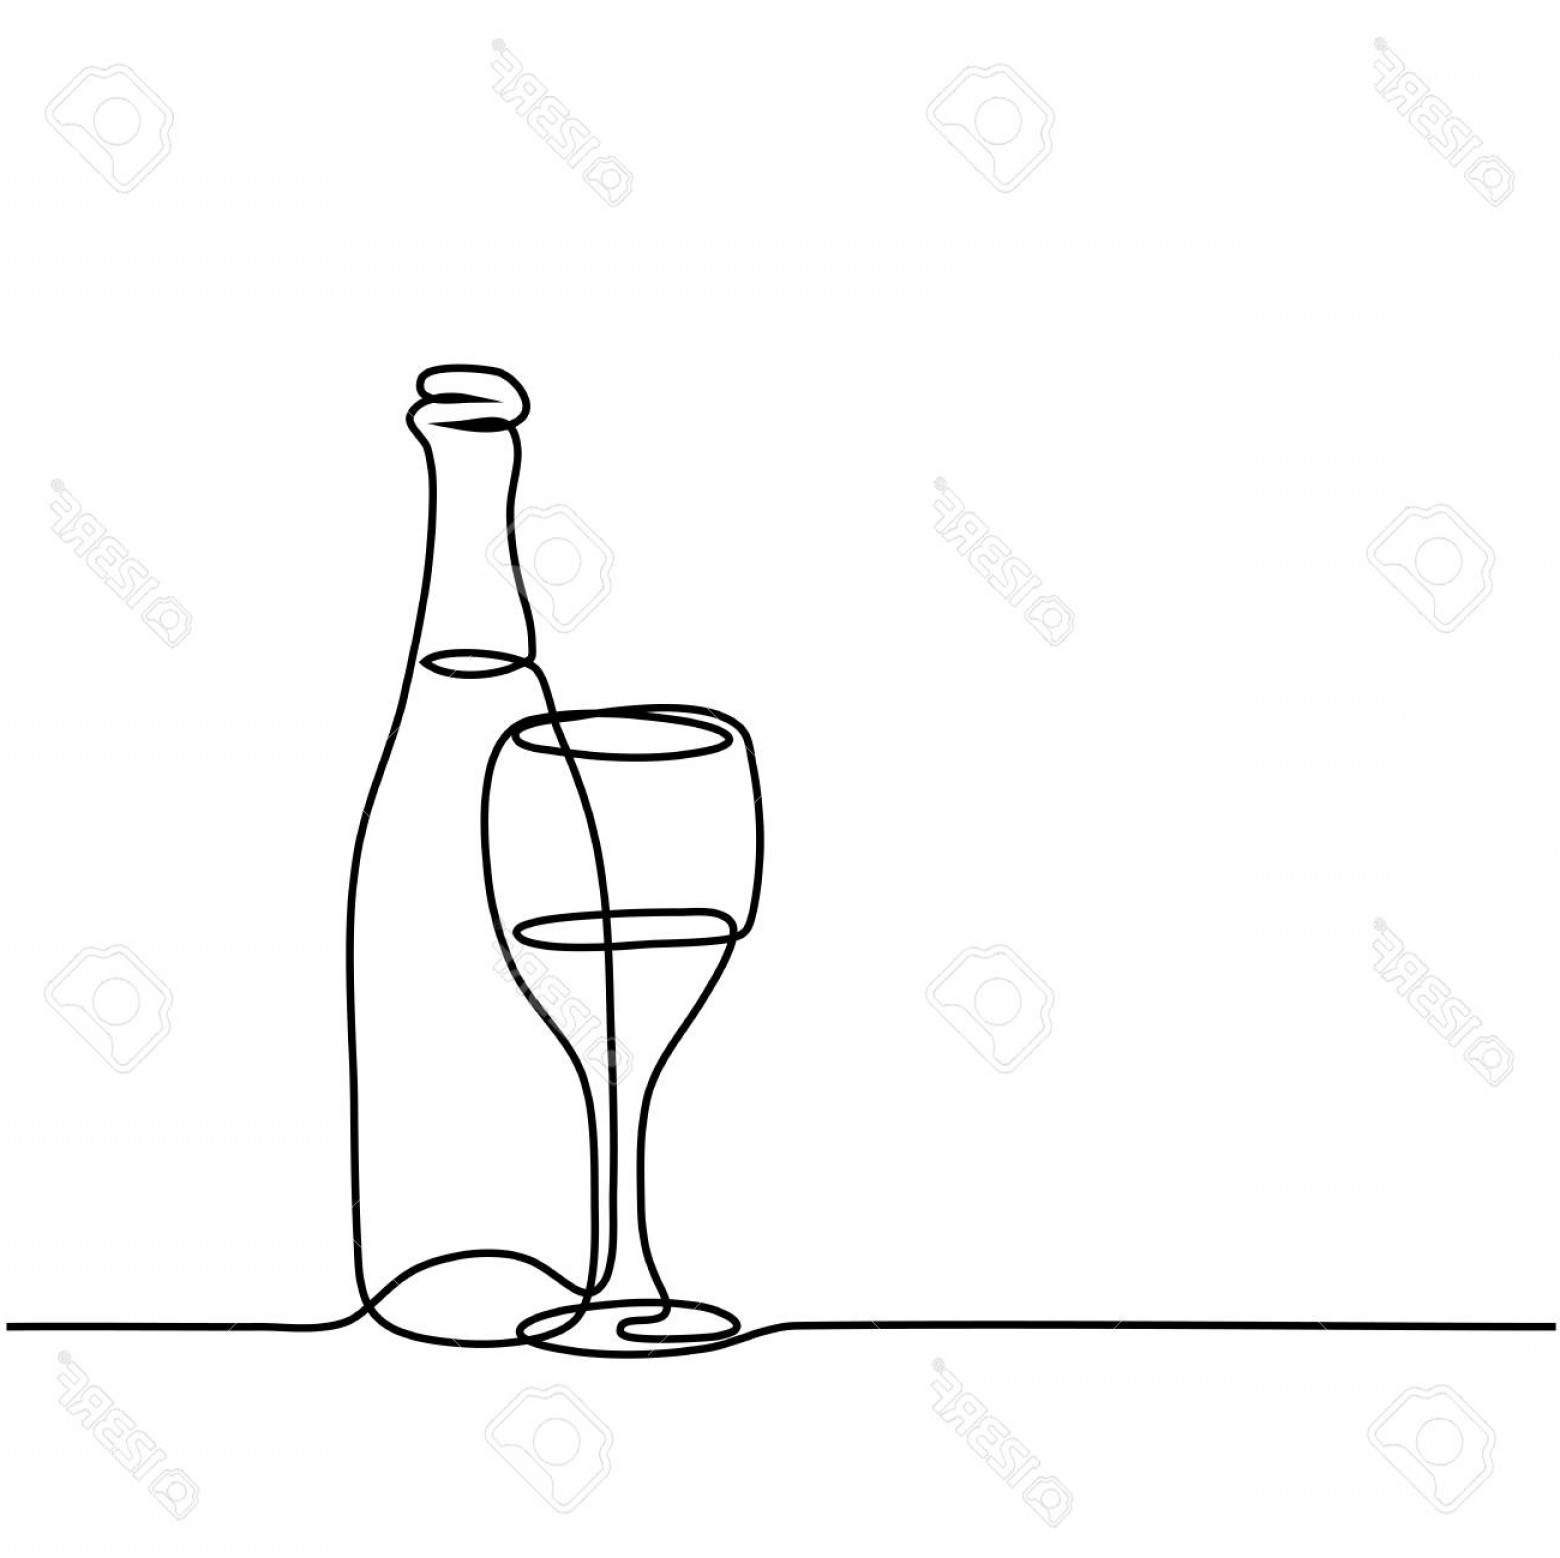 Wine Bottle Vector Line Art: Photostock Vector Continuous Line Drawing Wine Bottle And Glass Contour Black Outline Vector